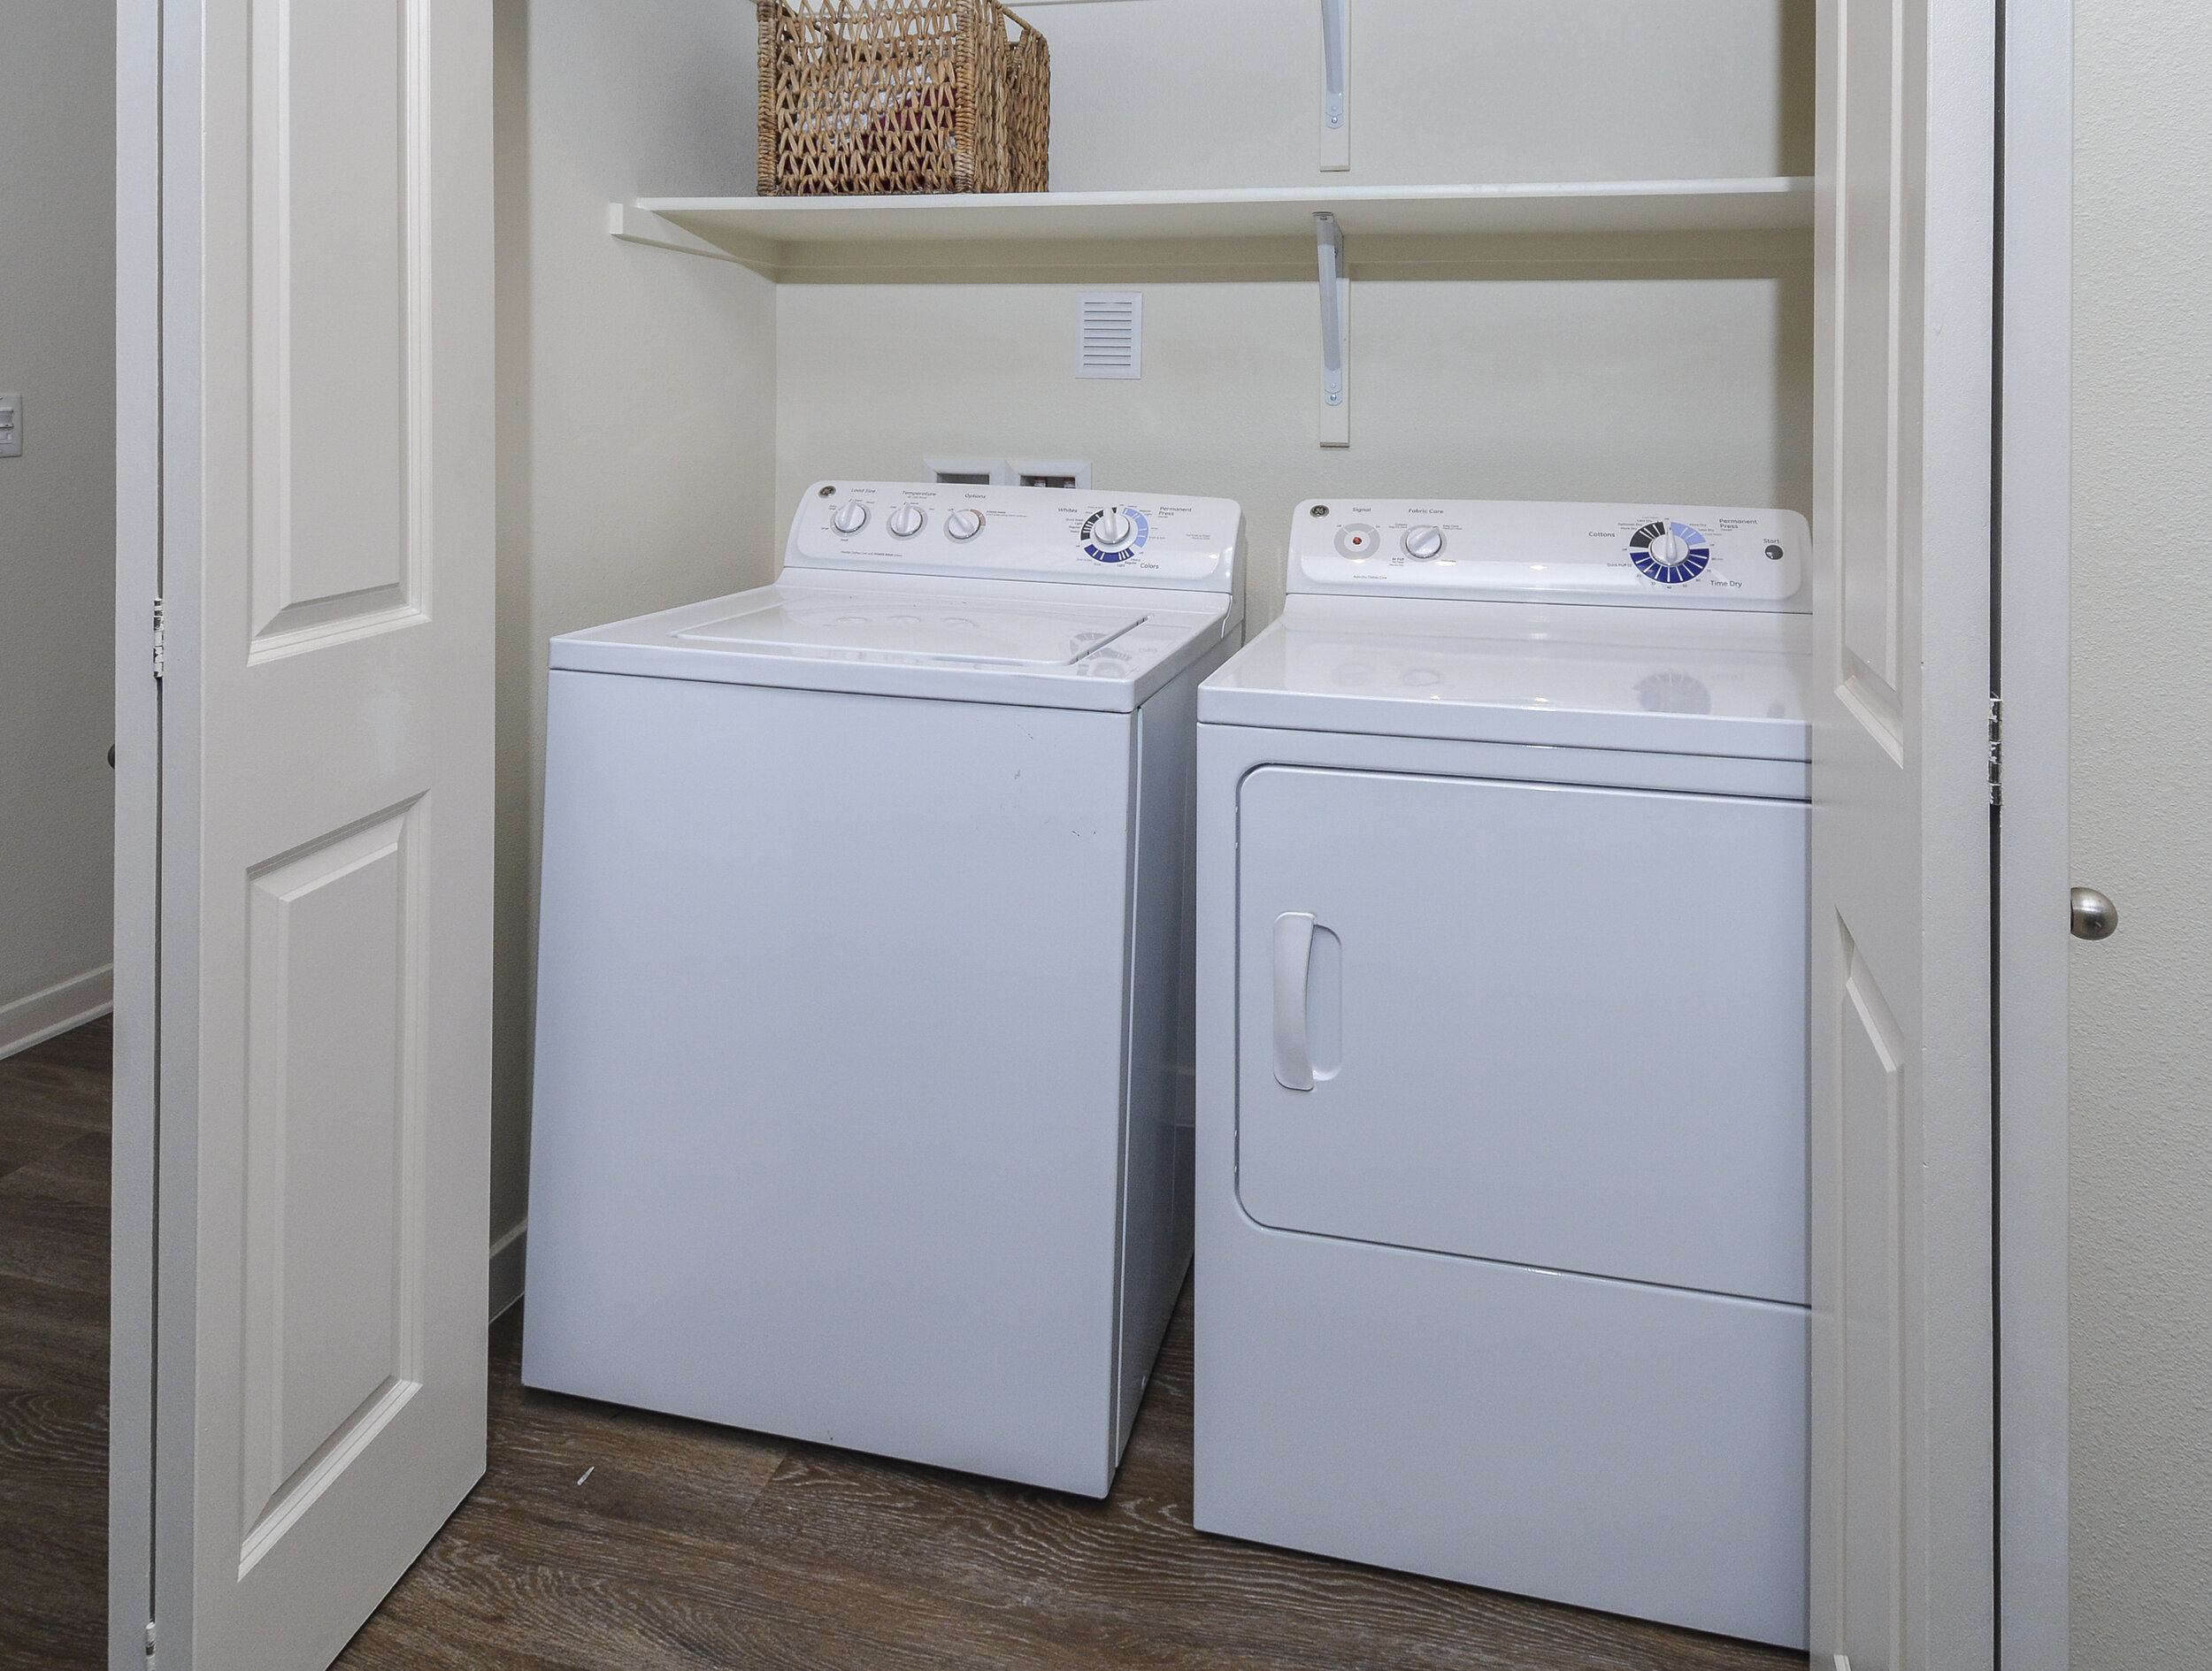 10-In-Unit Washer _ Dryer Included.jpg